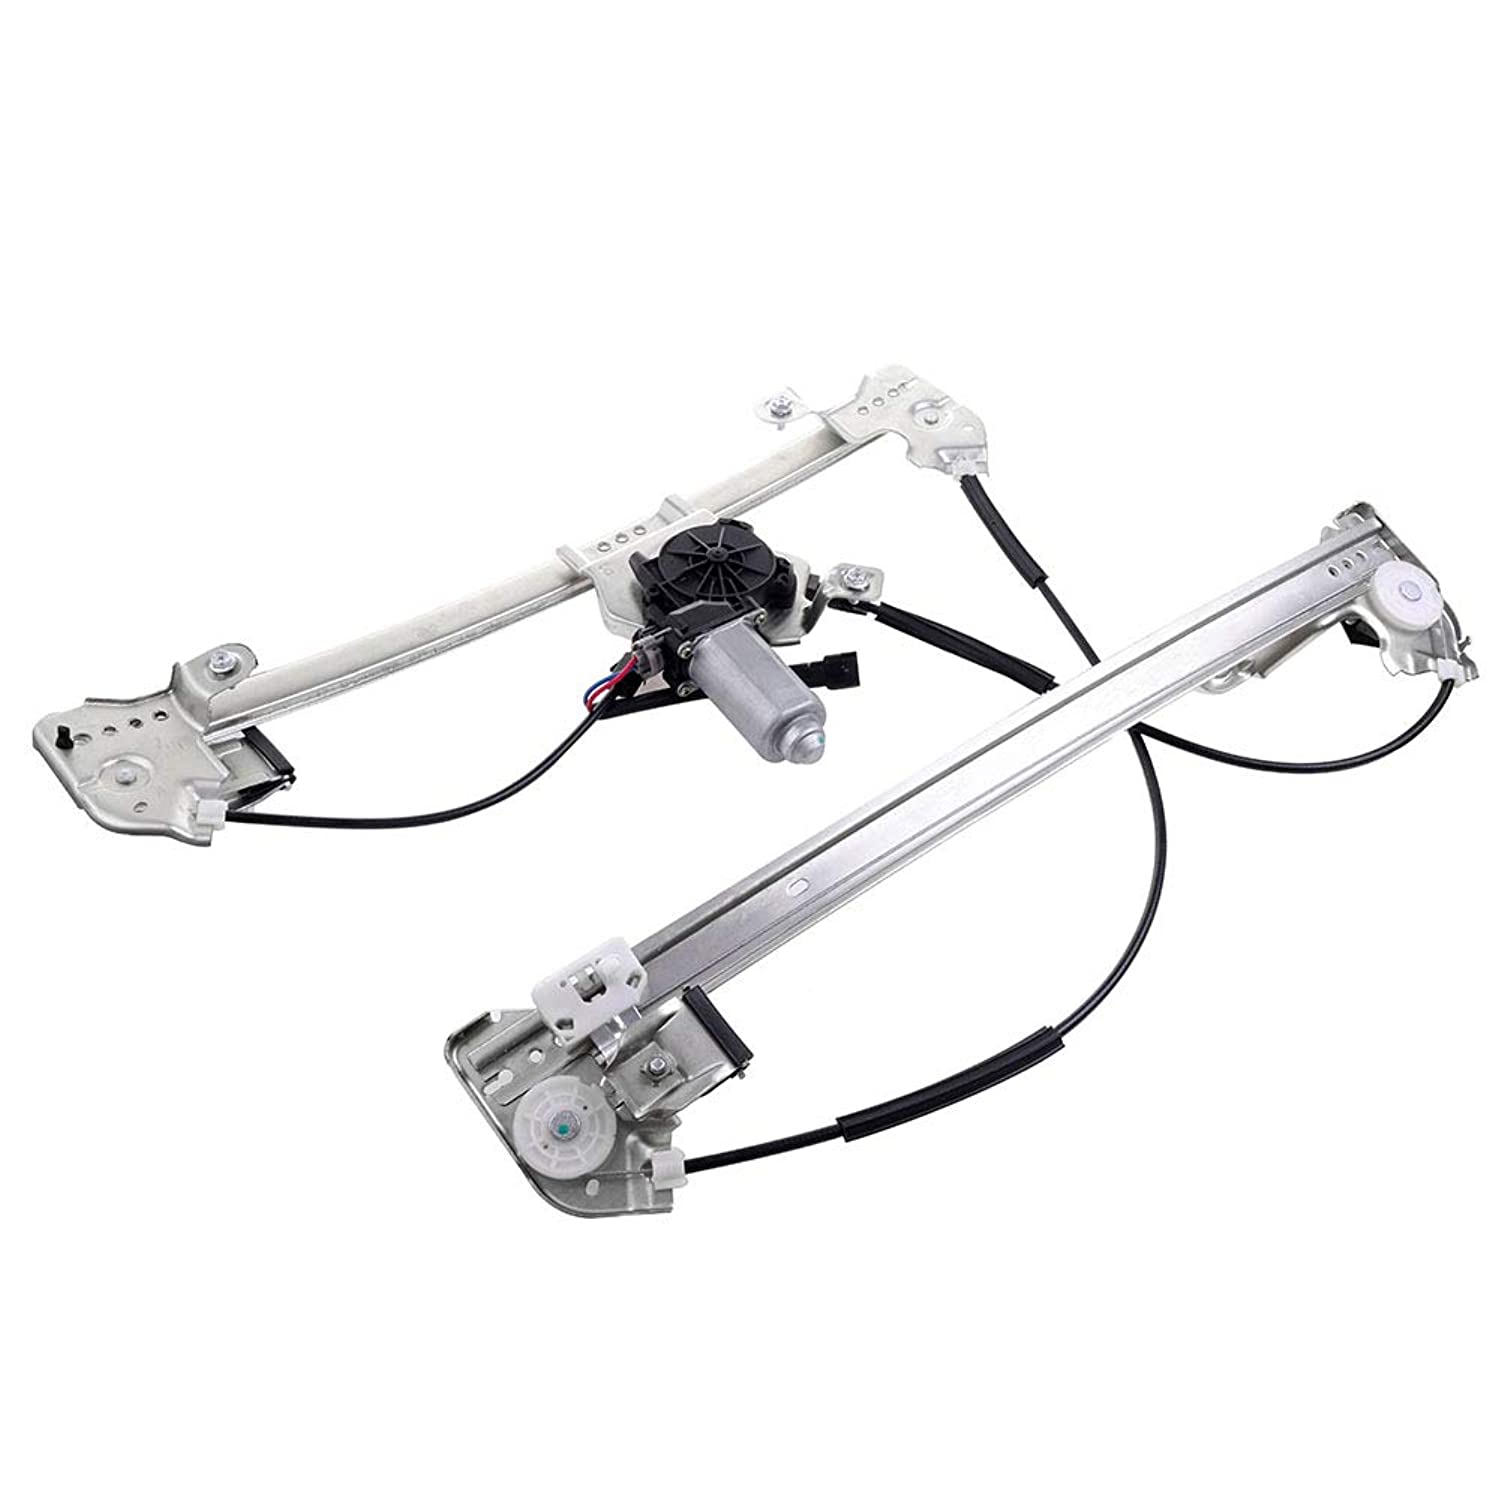 Power Window Regulator with Motor Replacement Front Right Passengers Side Window Regulator fit for 2004-2008 Ford Truck 2004-2008 Ford F150 (Fits Crew Cab (Extended cab) Only) 4L3Z1823200BA 741431 bzol883691722